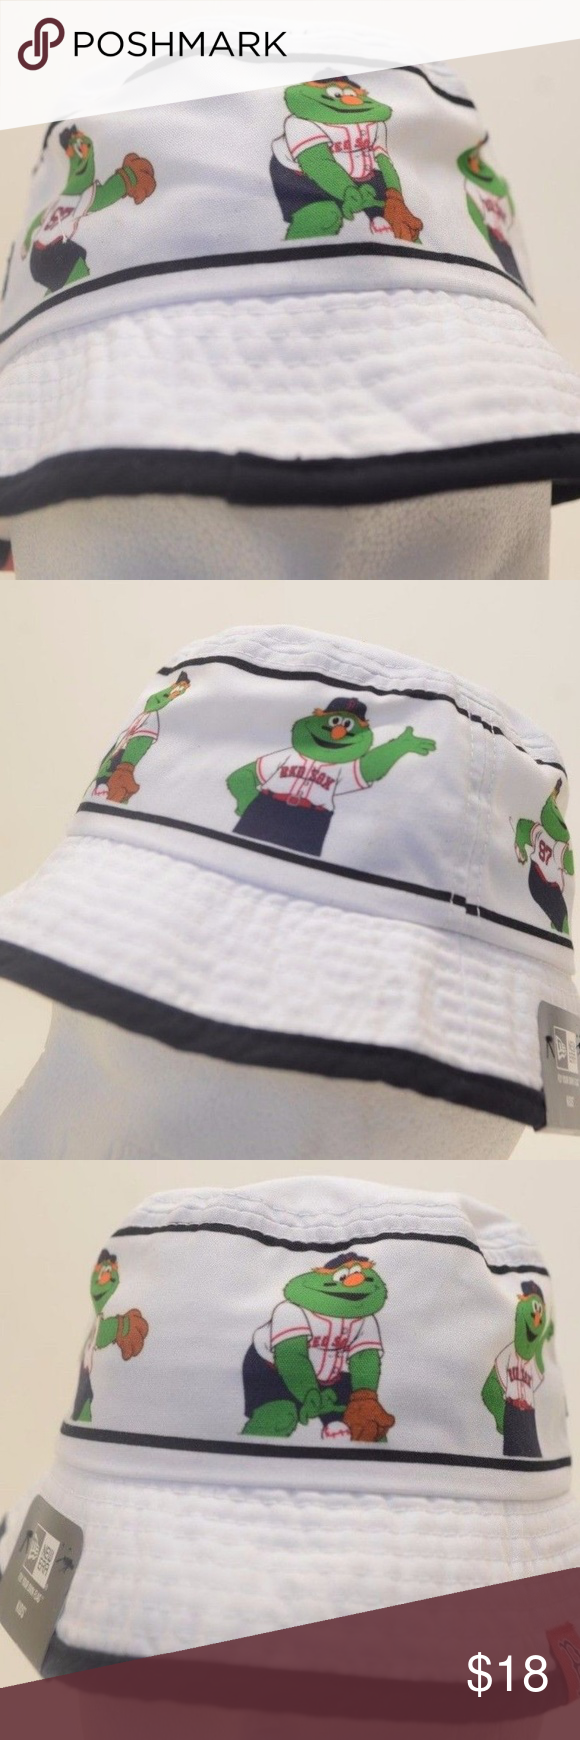 Kids MLB Boston Red Sox Bucket Hat Wally New Era Toddler Brand New Era  Size TODDLER 100%Authentic Stock 1856 New Era Accessories Hats bf5af7ea1e81